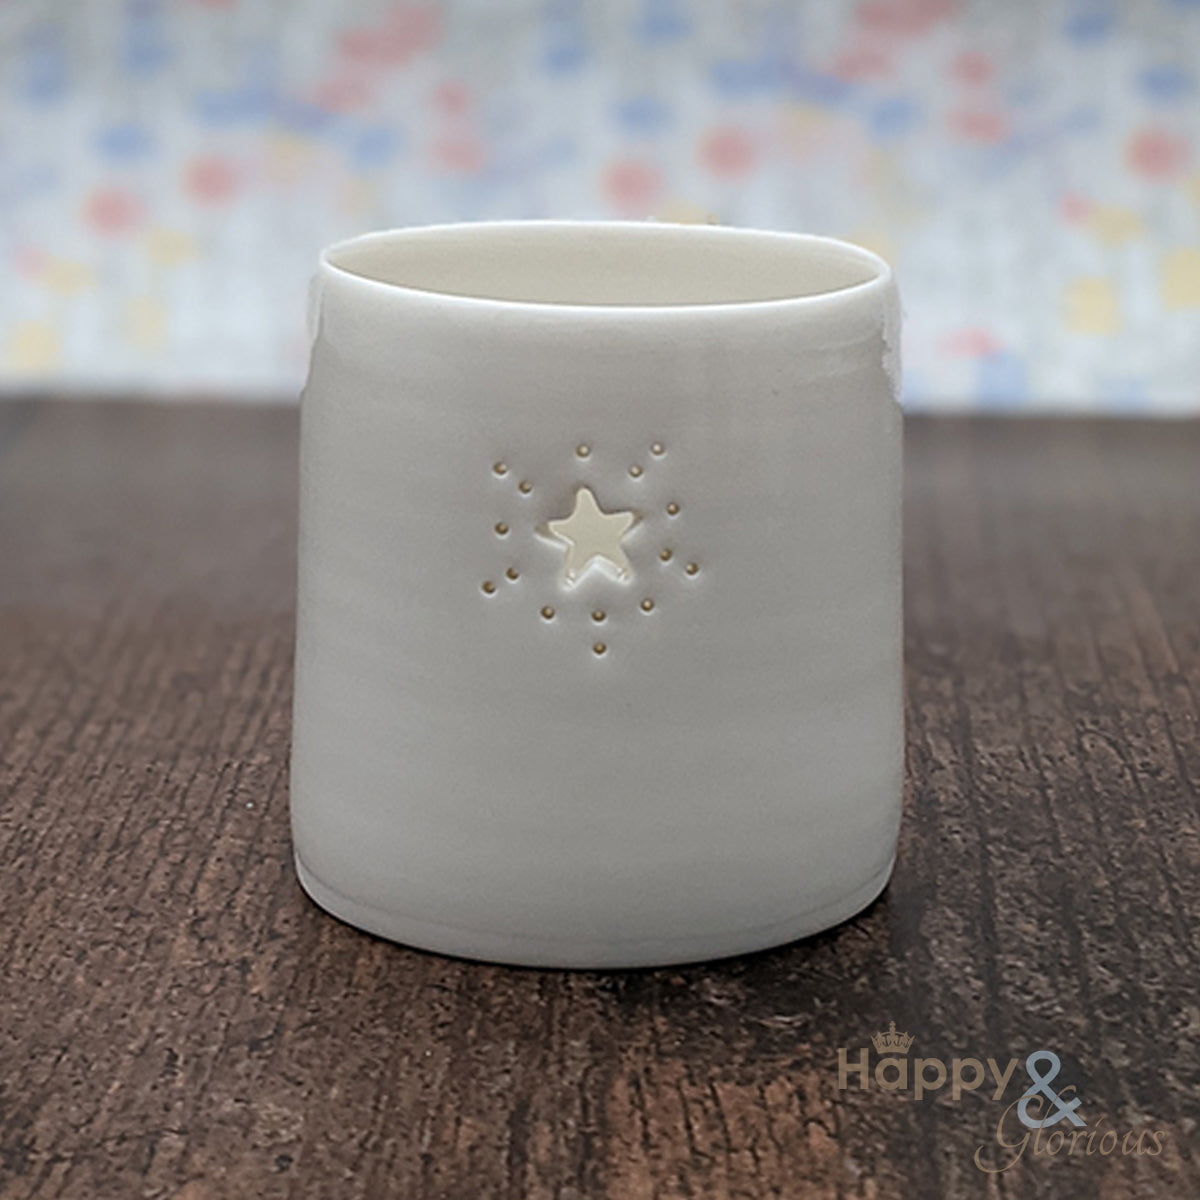 Porcelain starburst tealight candle holder by Luna Lighting